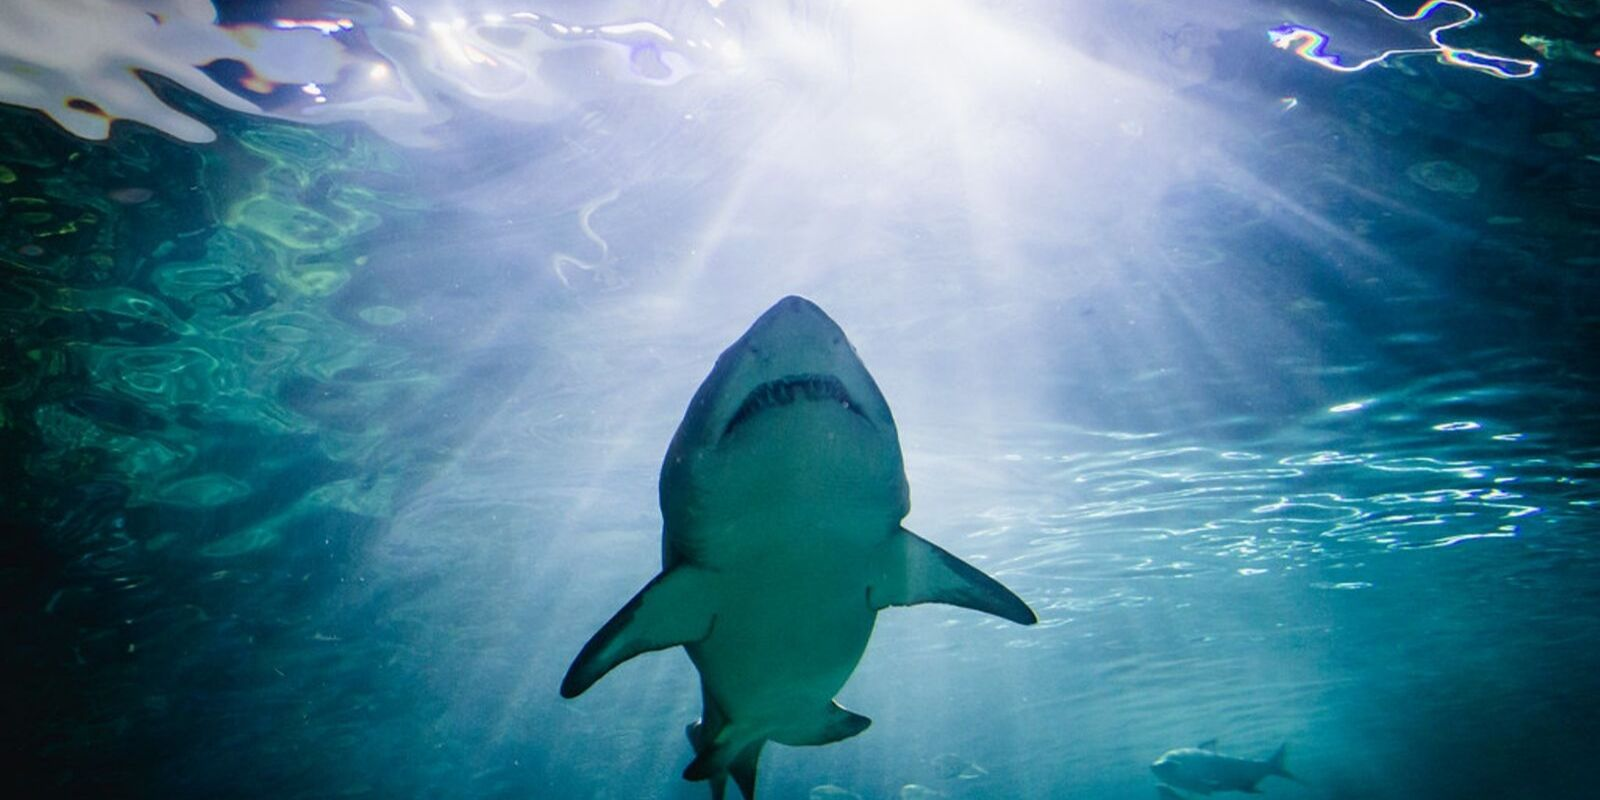 Man who swam naked with sharks in  Ripley's Aquarium pleads guilty to mischief